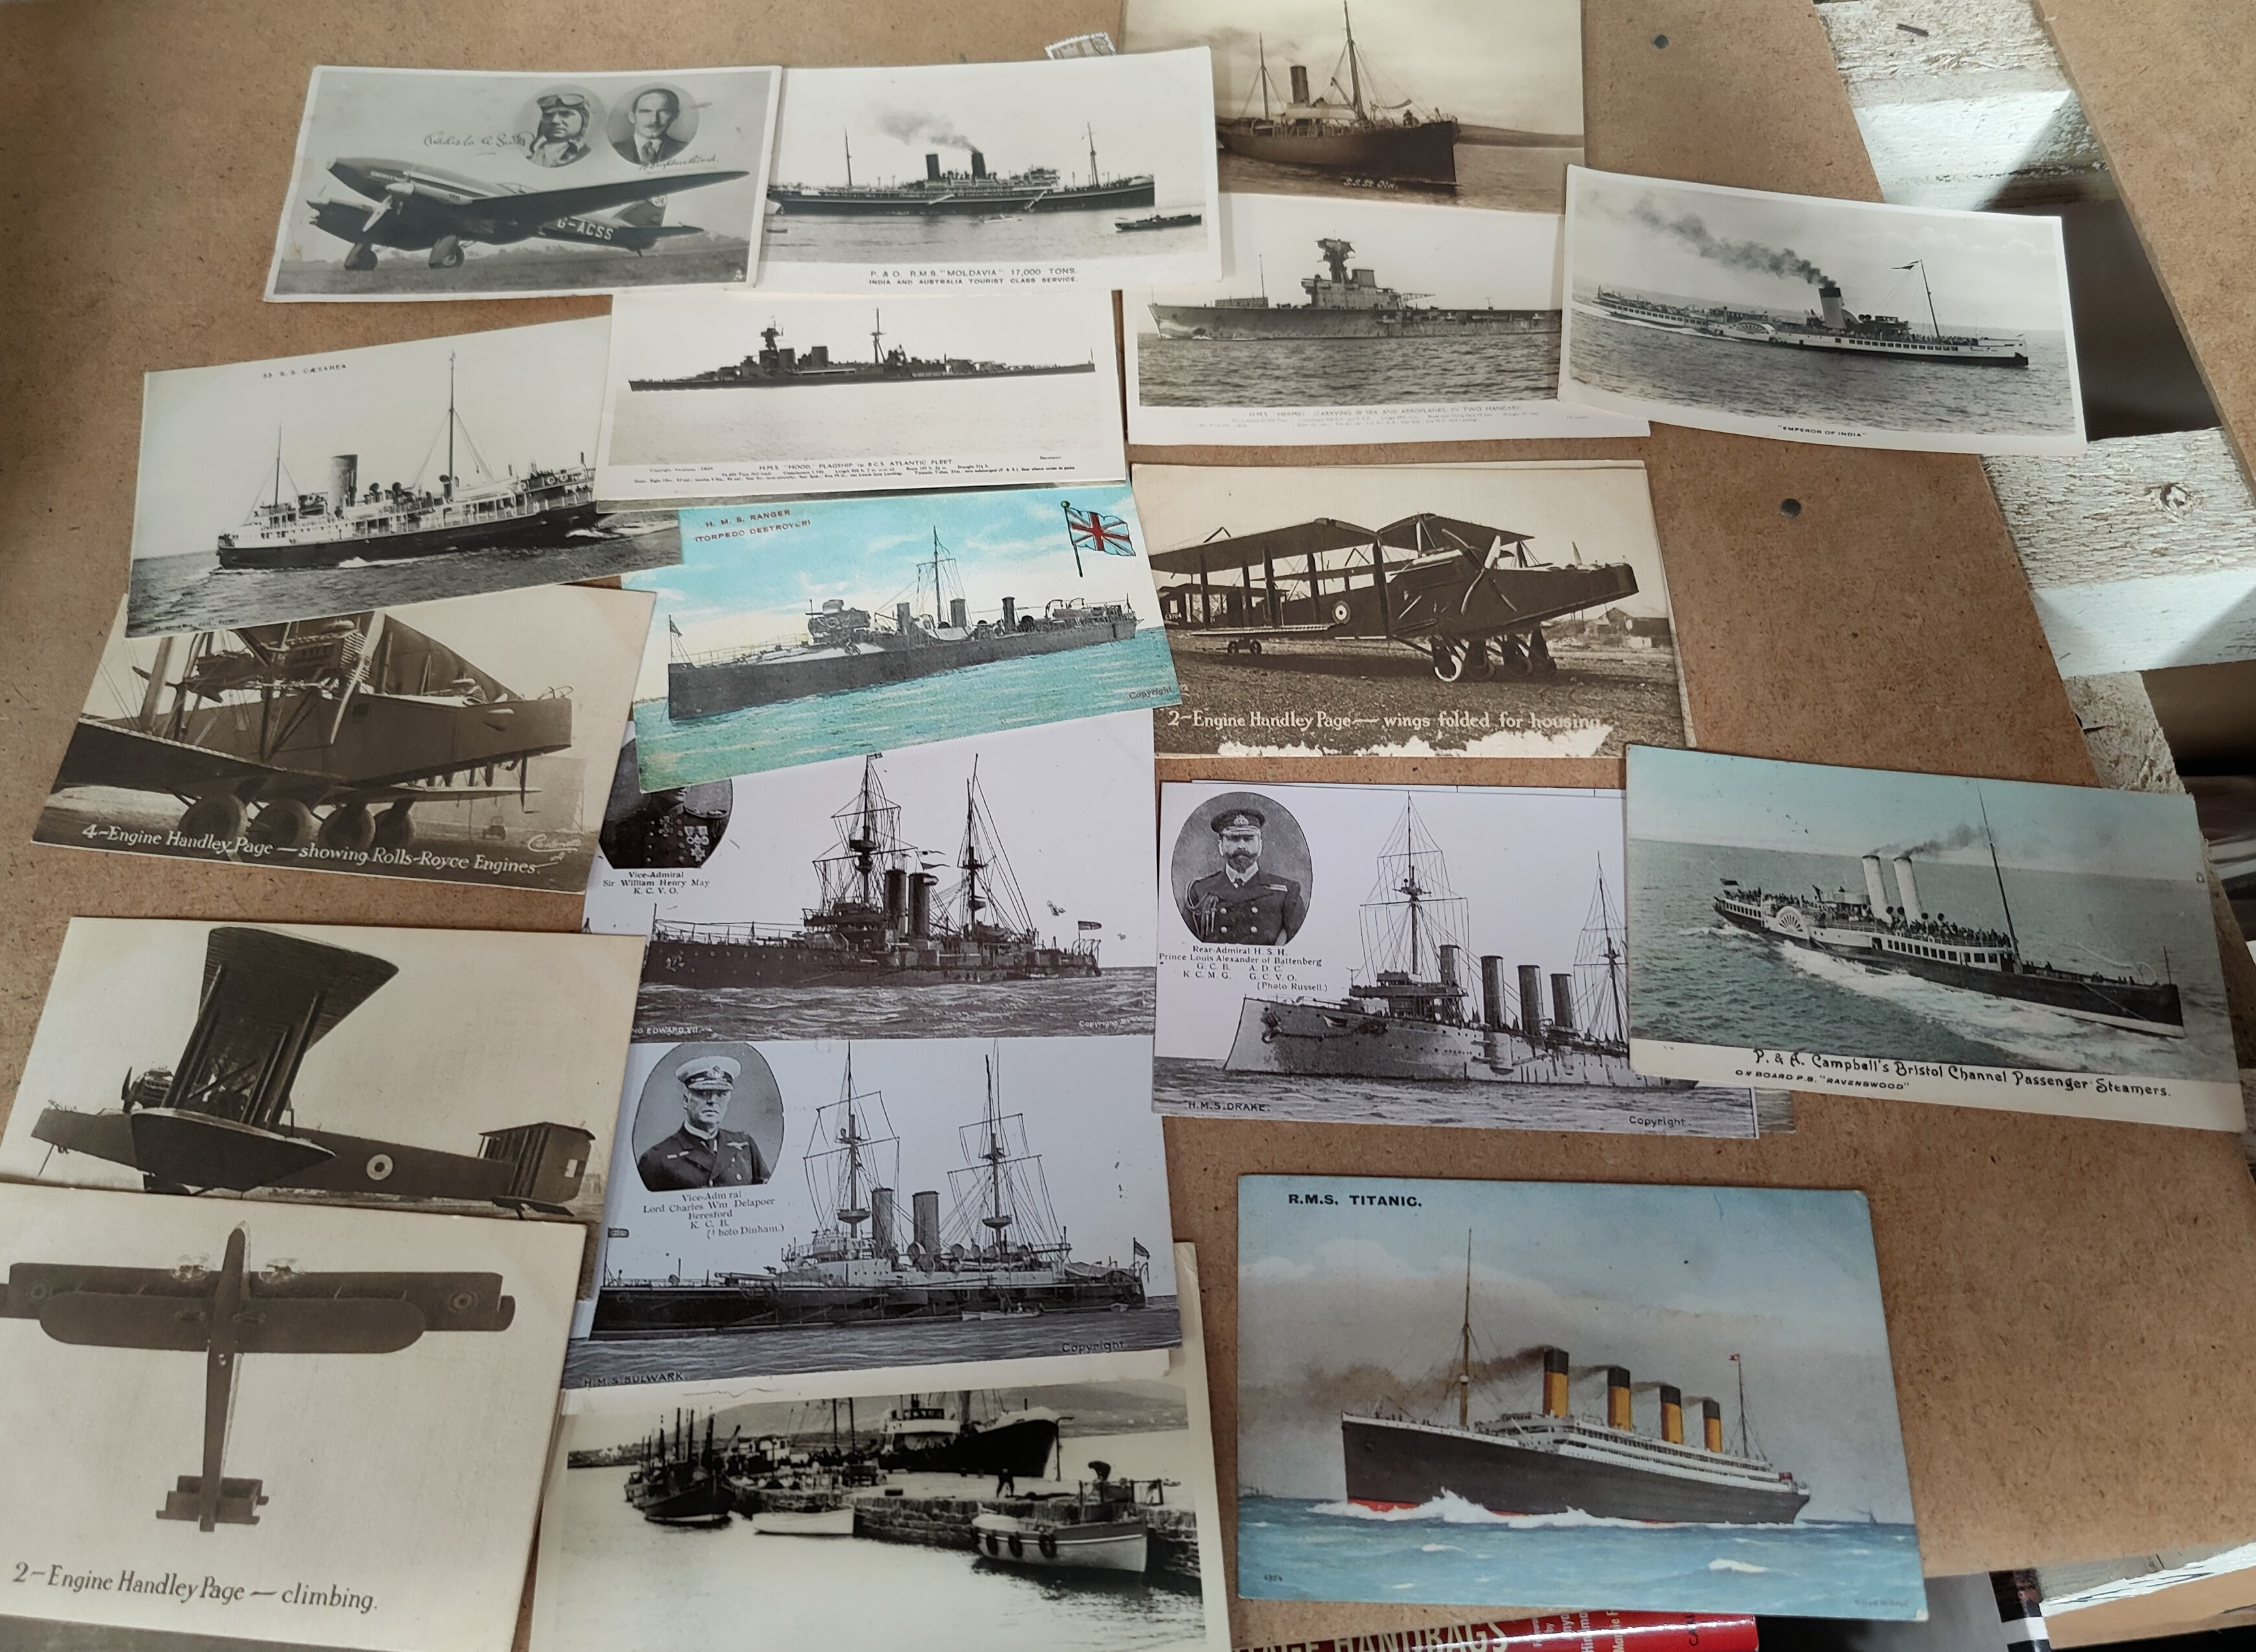 An RMS Titanic memorial postcard, other ships and 5 cards depicting Handley Page aircraft